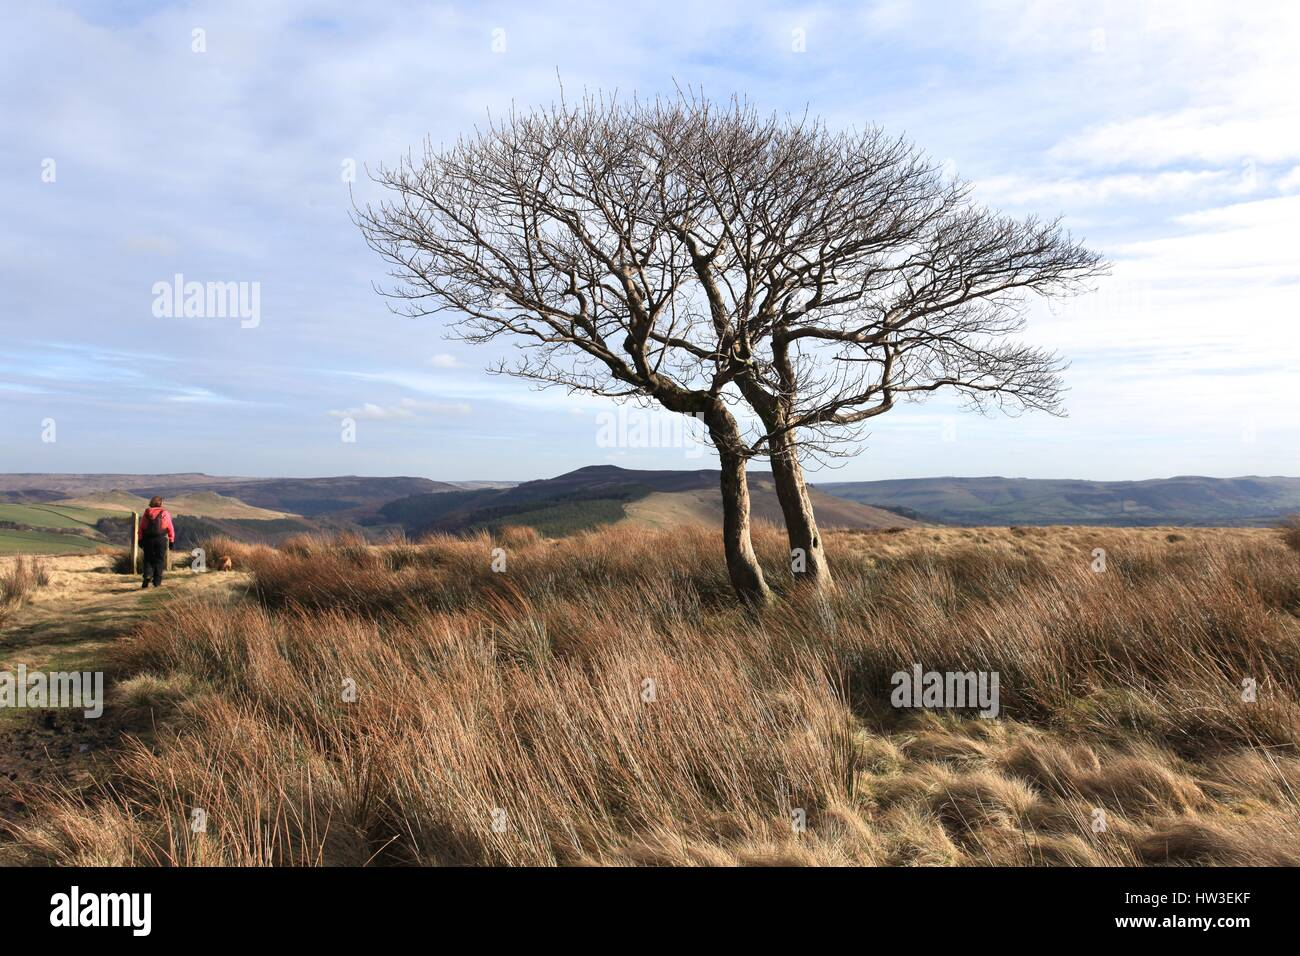 Lone trees on Nether Moor, below Kinder Scout, Peak District, England - Stock Image